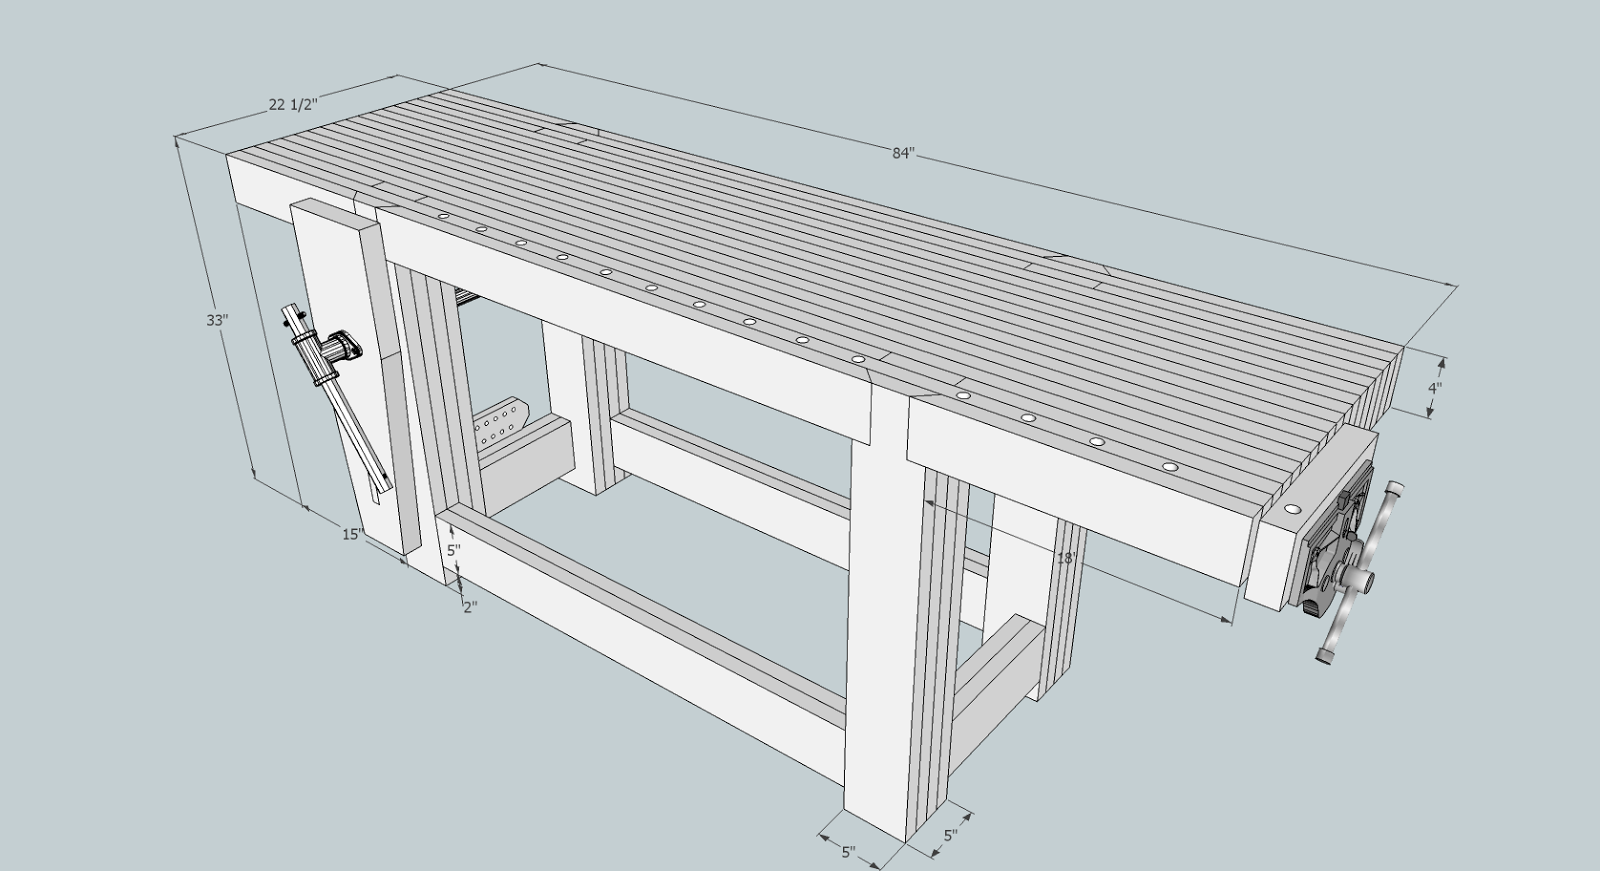 Below is a sketchup model of my interpretation customized to fit the ...